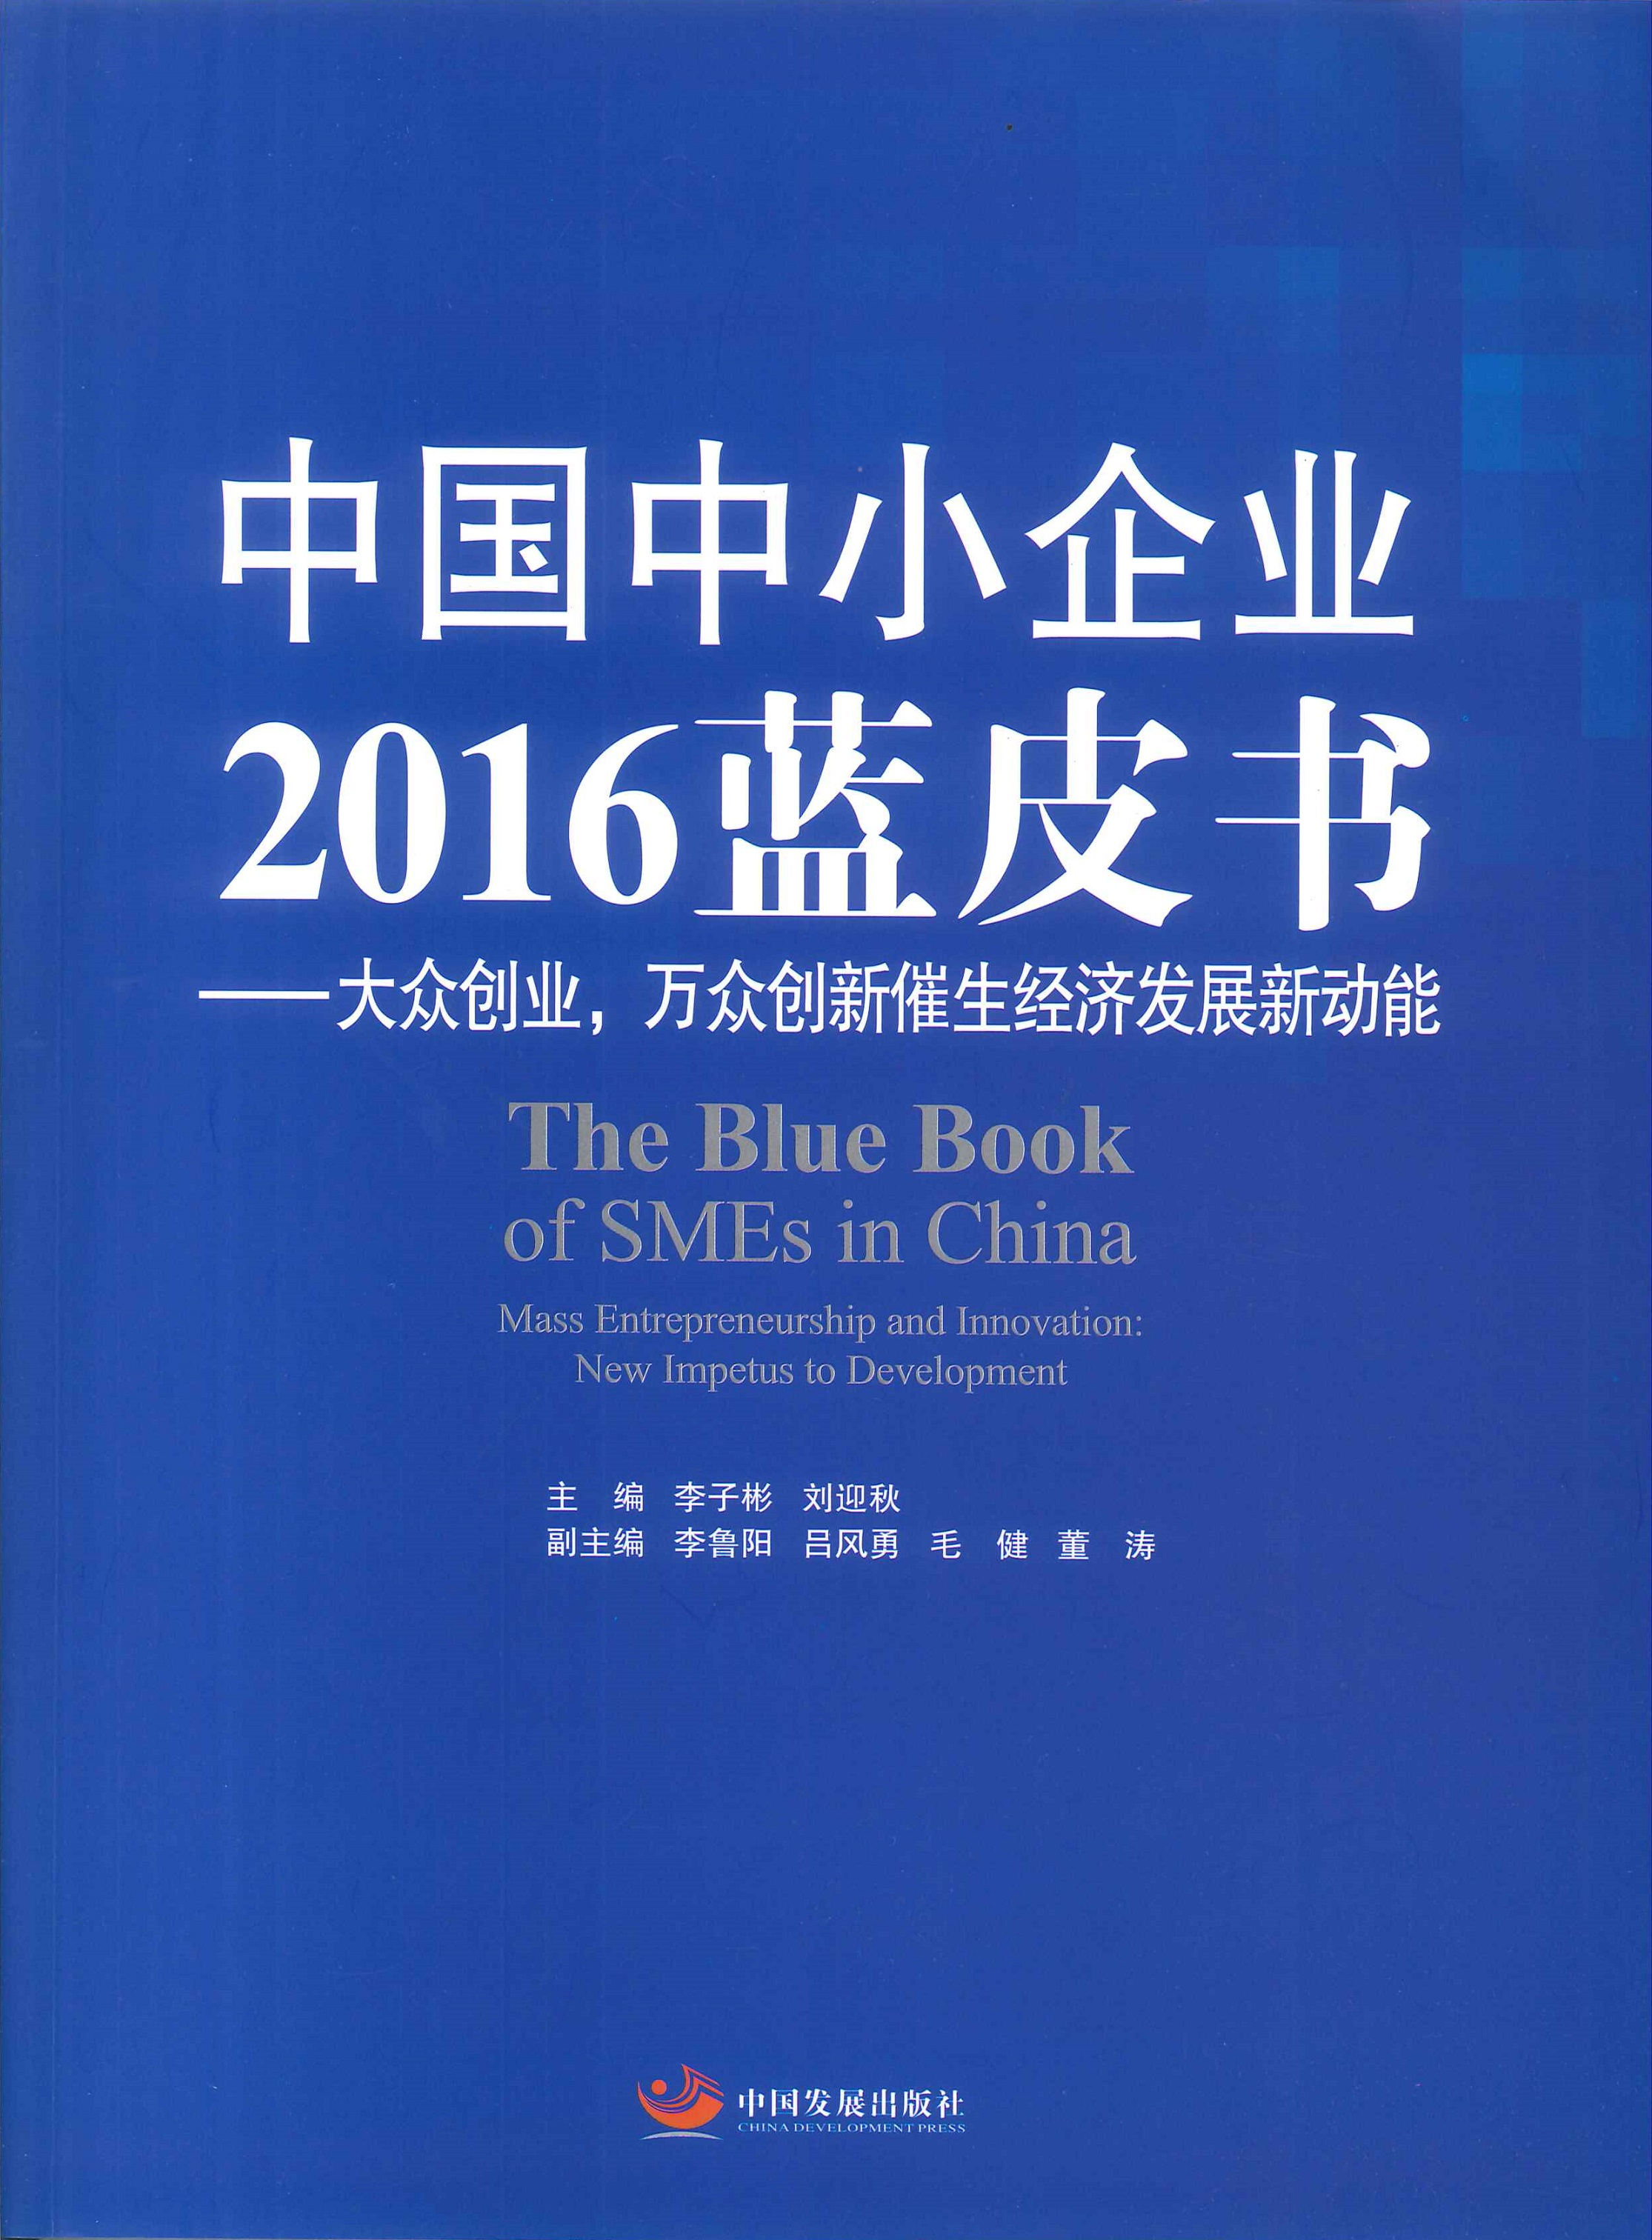 中国中小企业蓝皮书=The blue book of small and medium enterprises in China